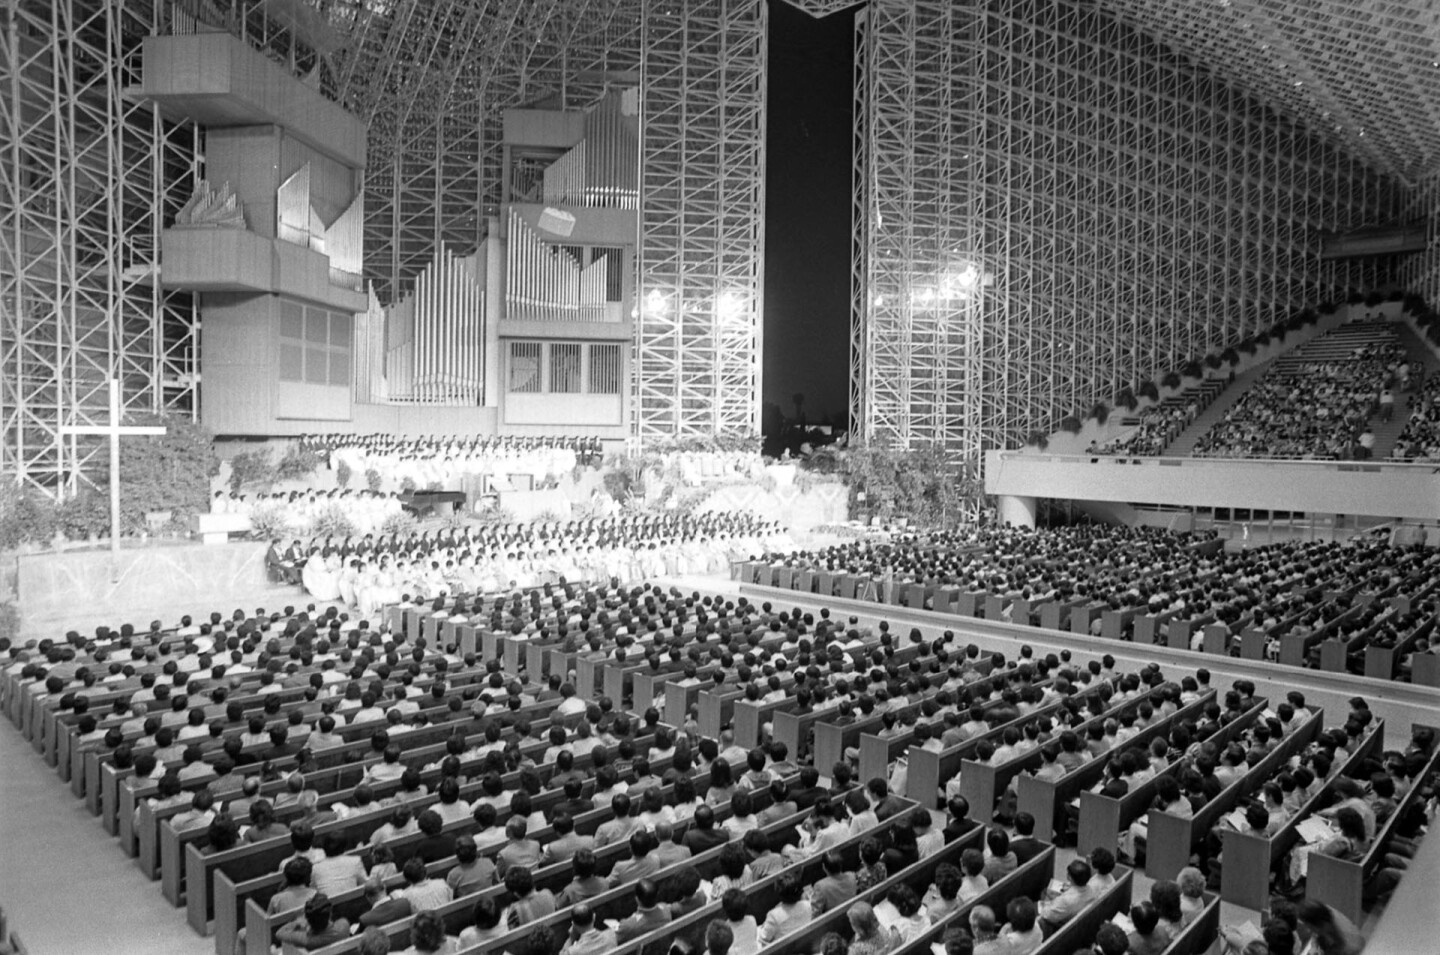 Service marking anniversary of introduction of Protestantism into Korea at the Crystal Cathedral in Garden Grove, Calif., 1984